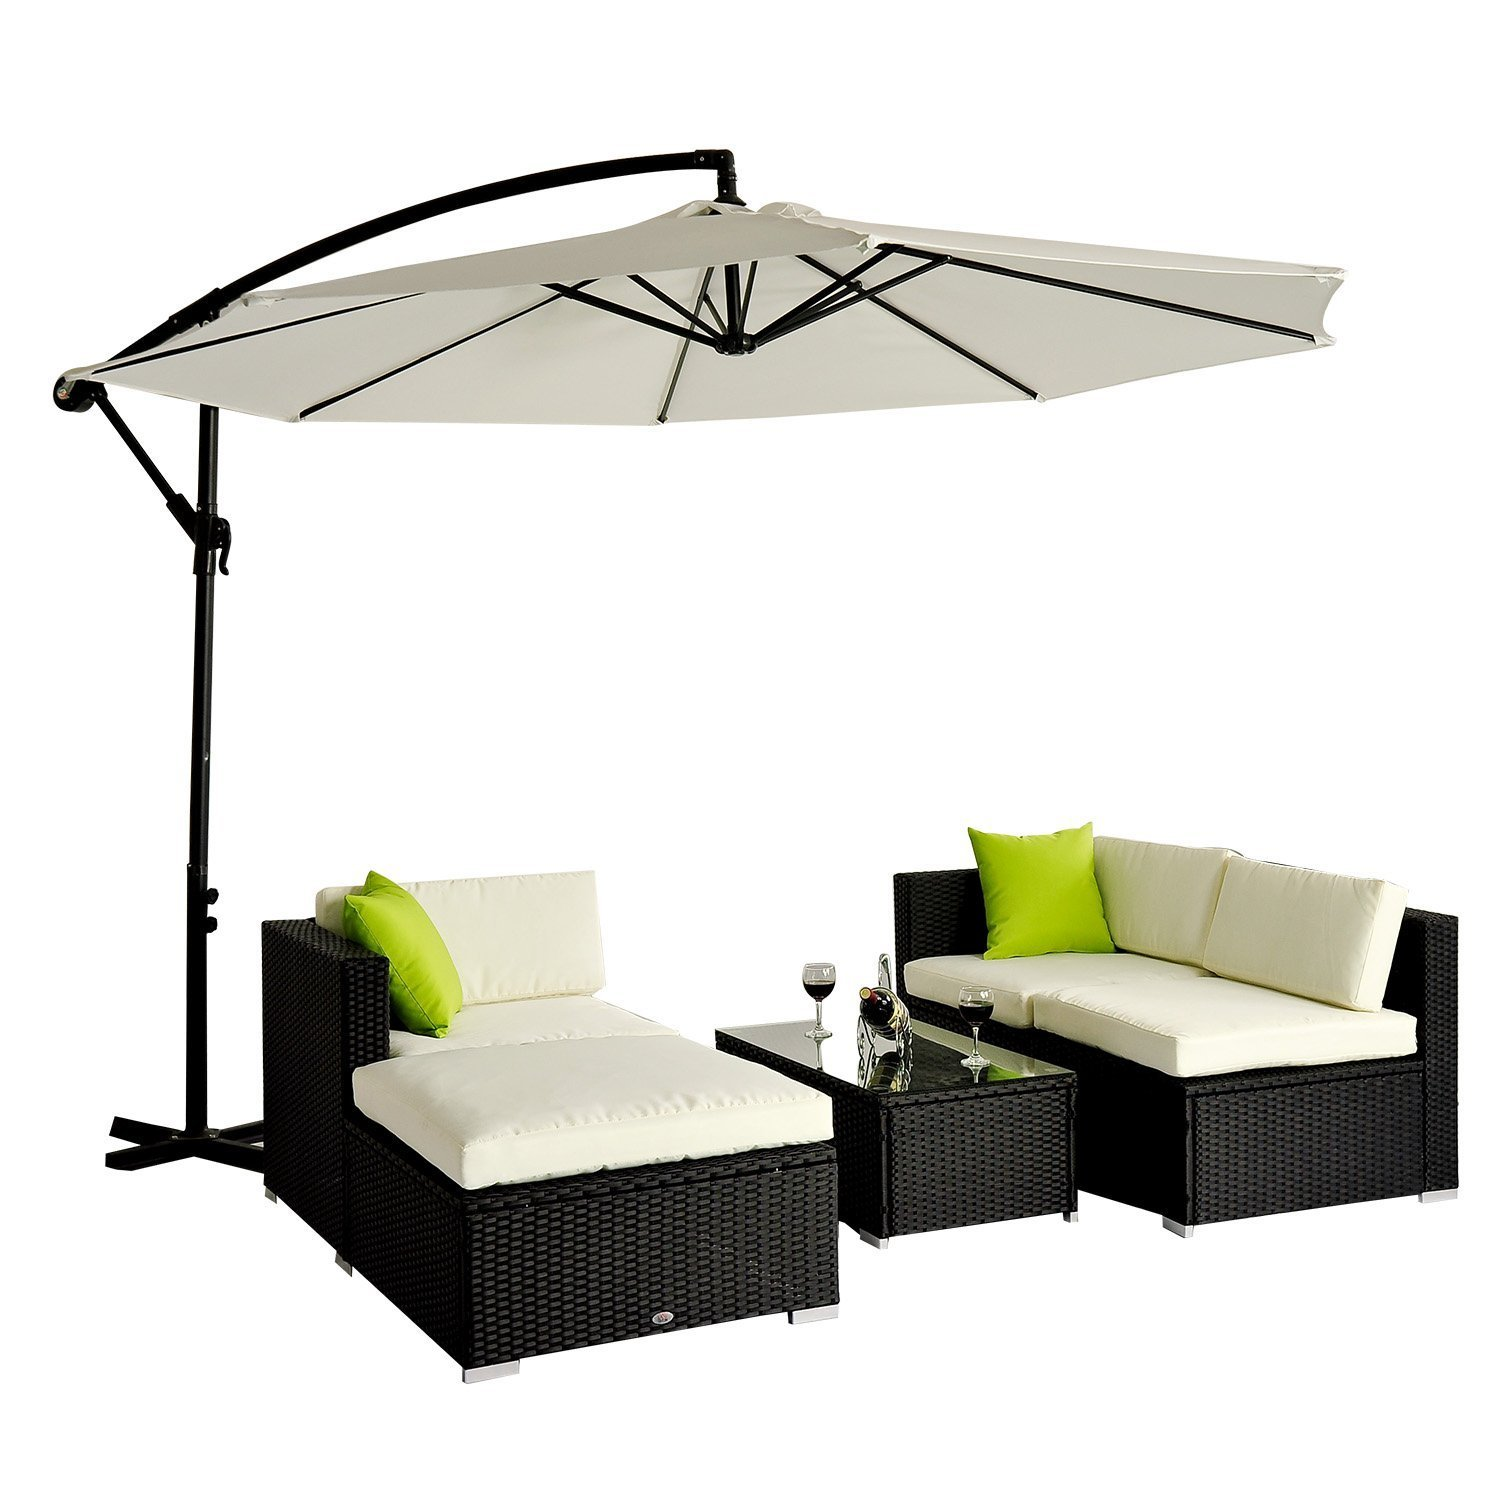 outsunny 5pc rattan wicker conservatory furniture garden corner sofa outdoor patio furniture set black parasol not included amazoncouk garden - Rattan Garden Furniture Tesco